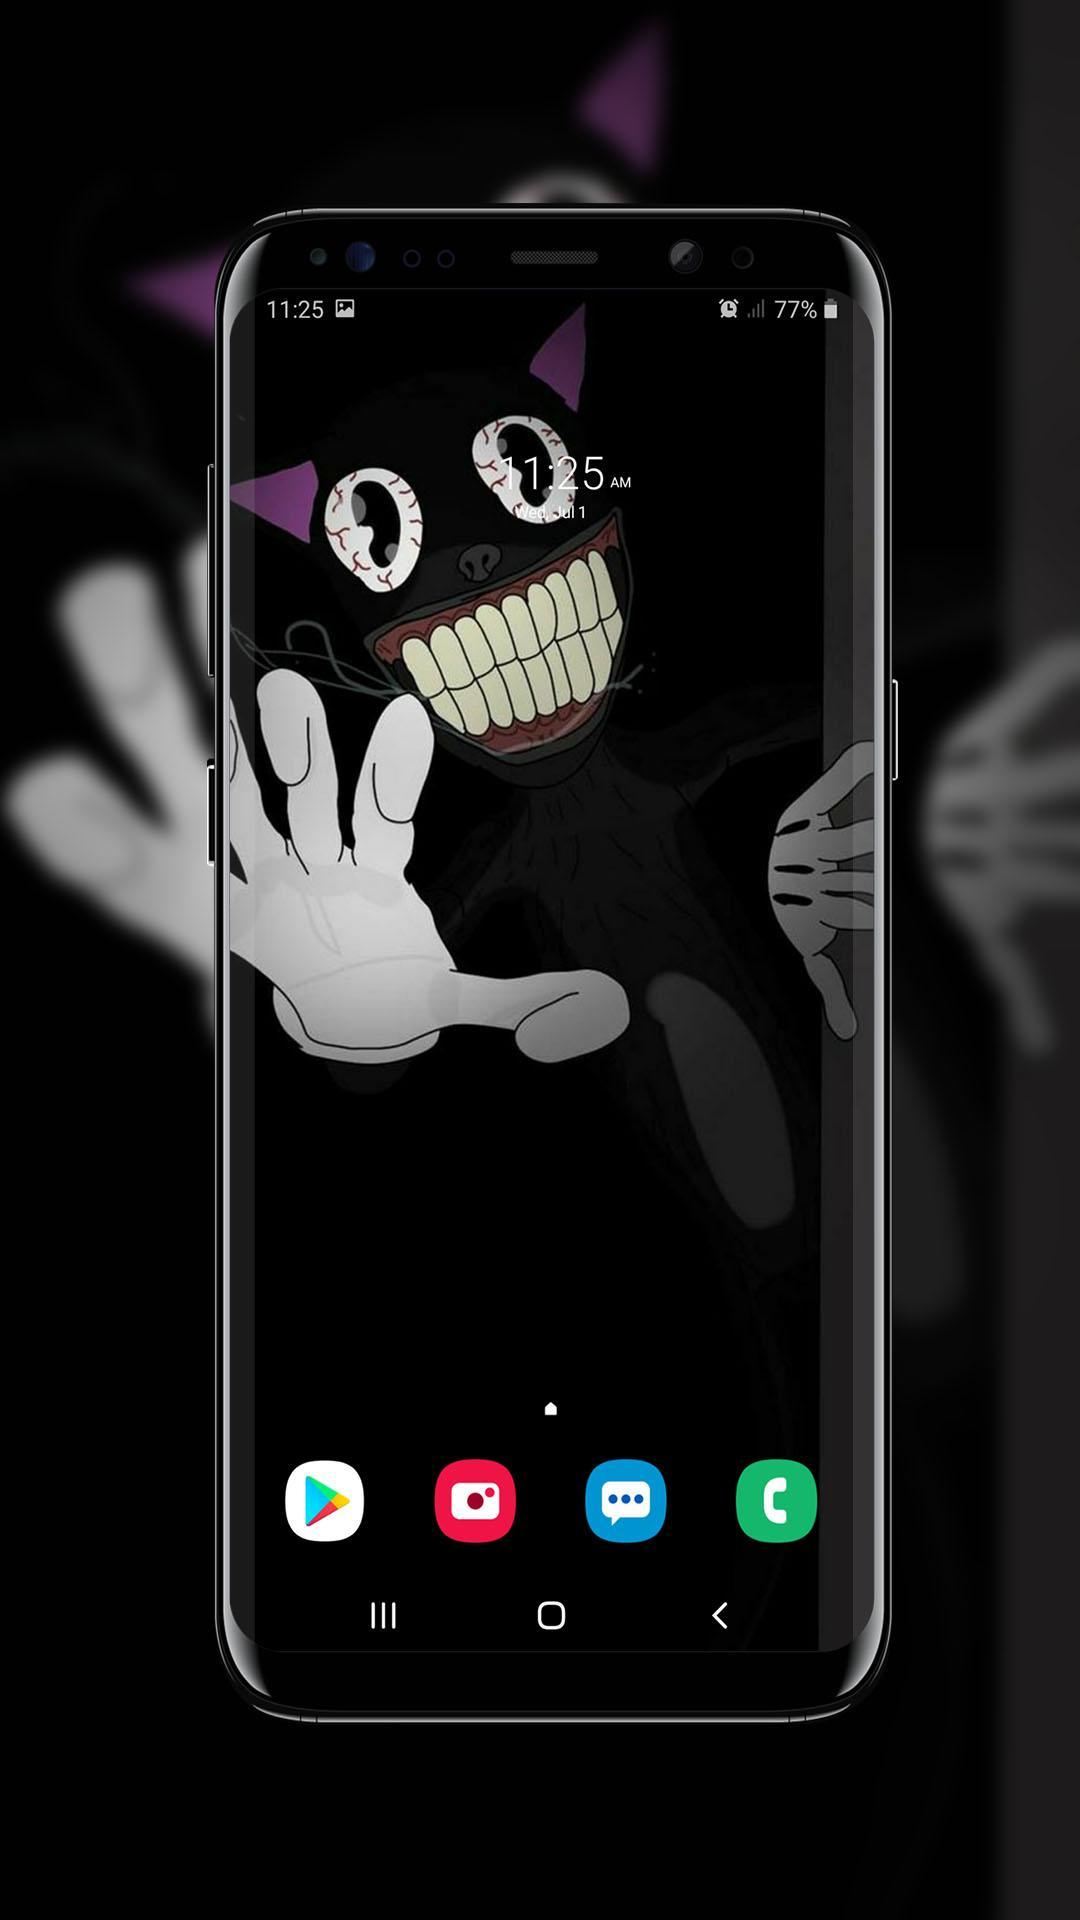 Cheshire Cartoon Cat Wallpaper For Android Apk Download